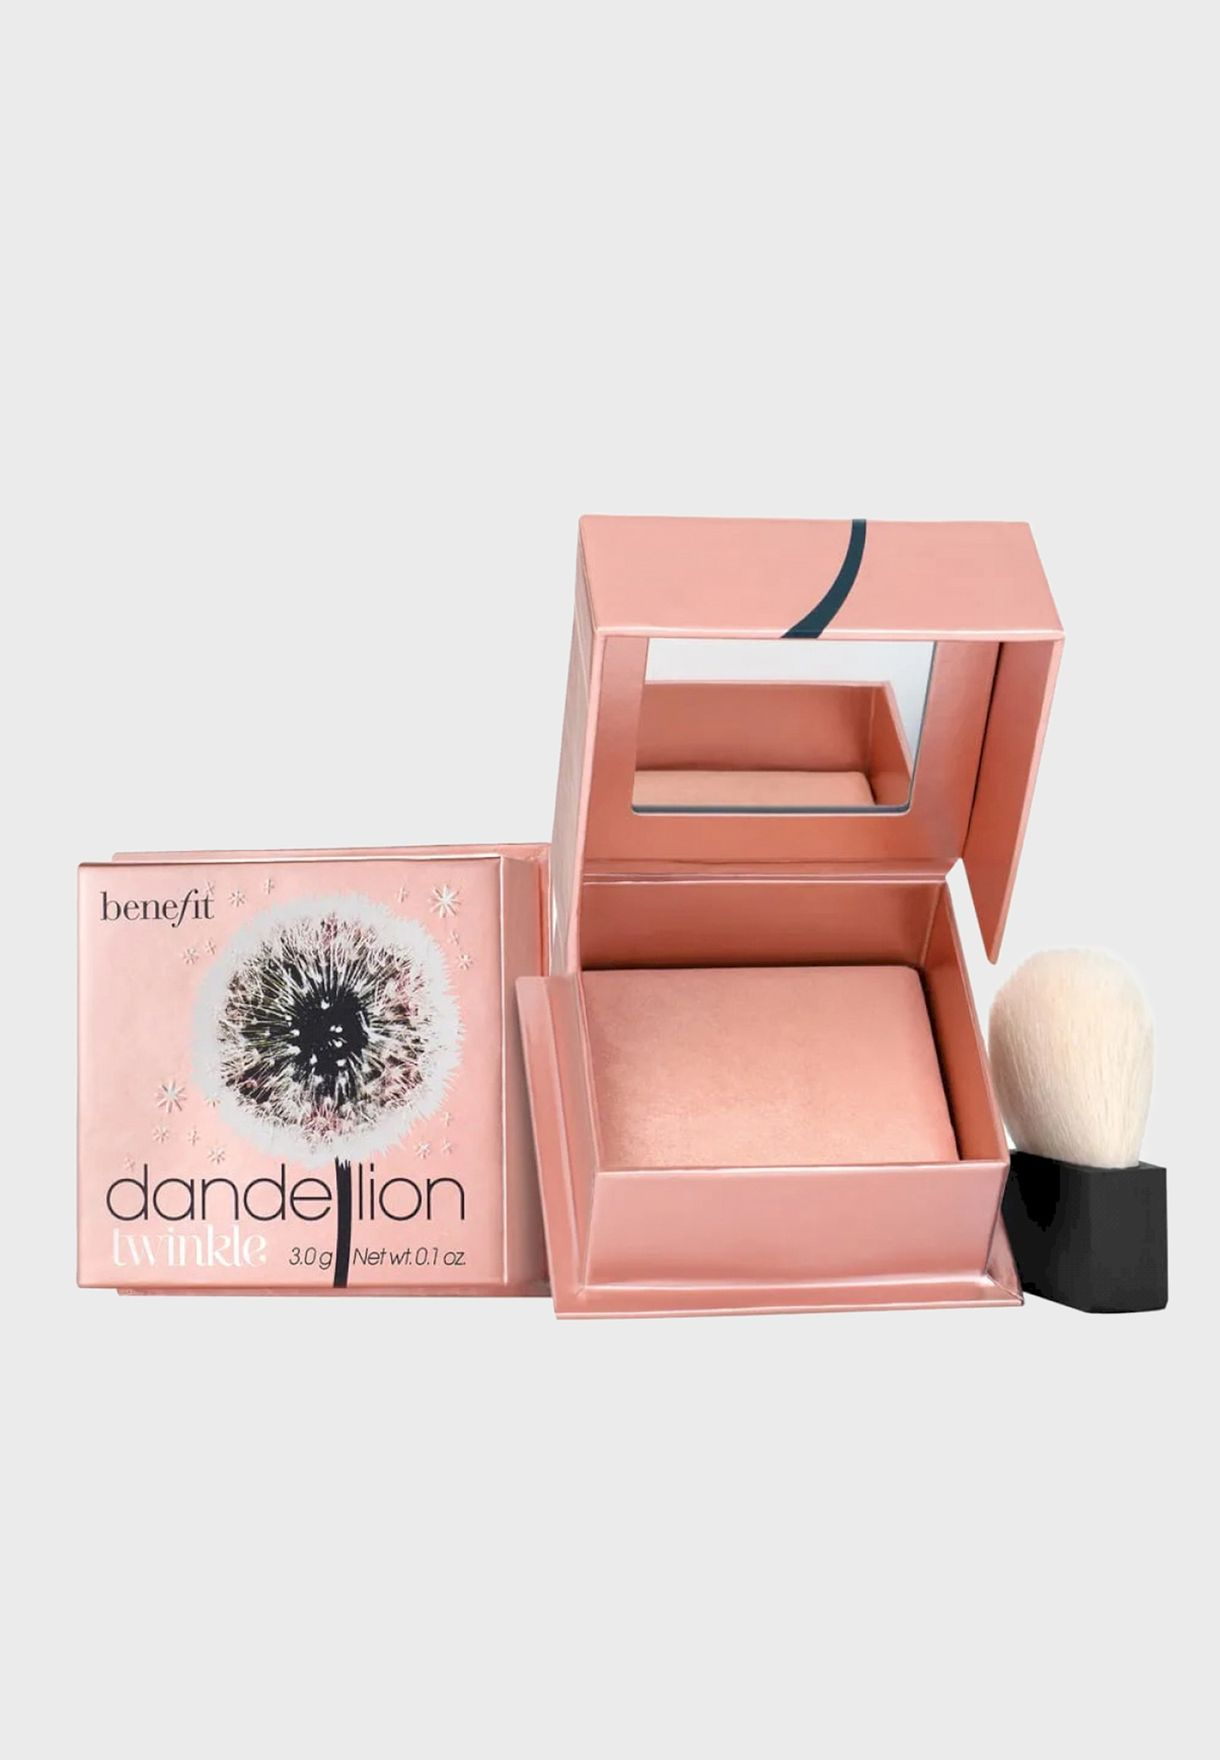 Dandelion Twinkle Blush Mini